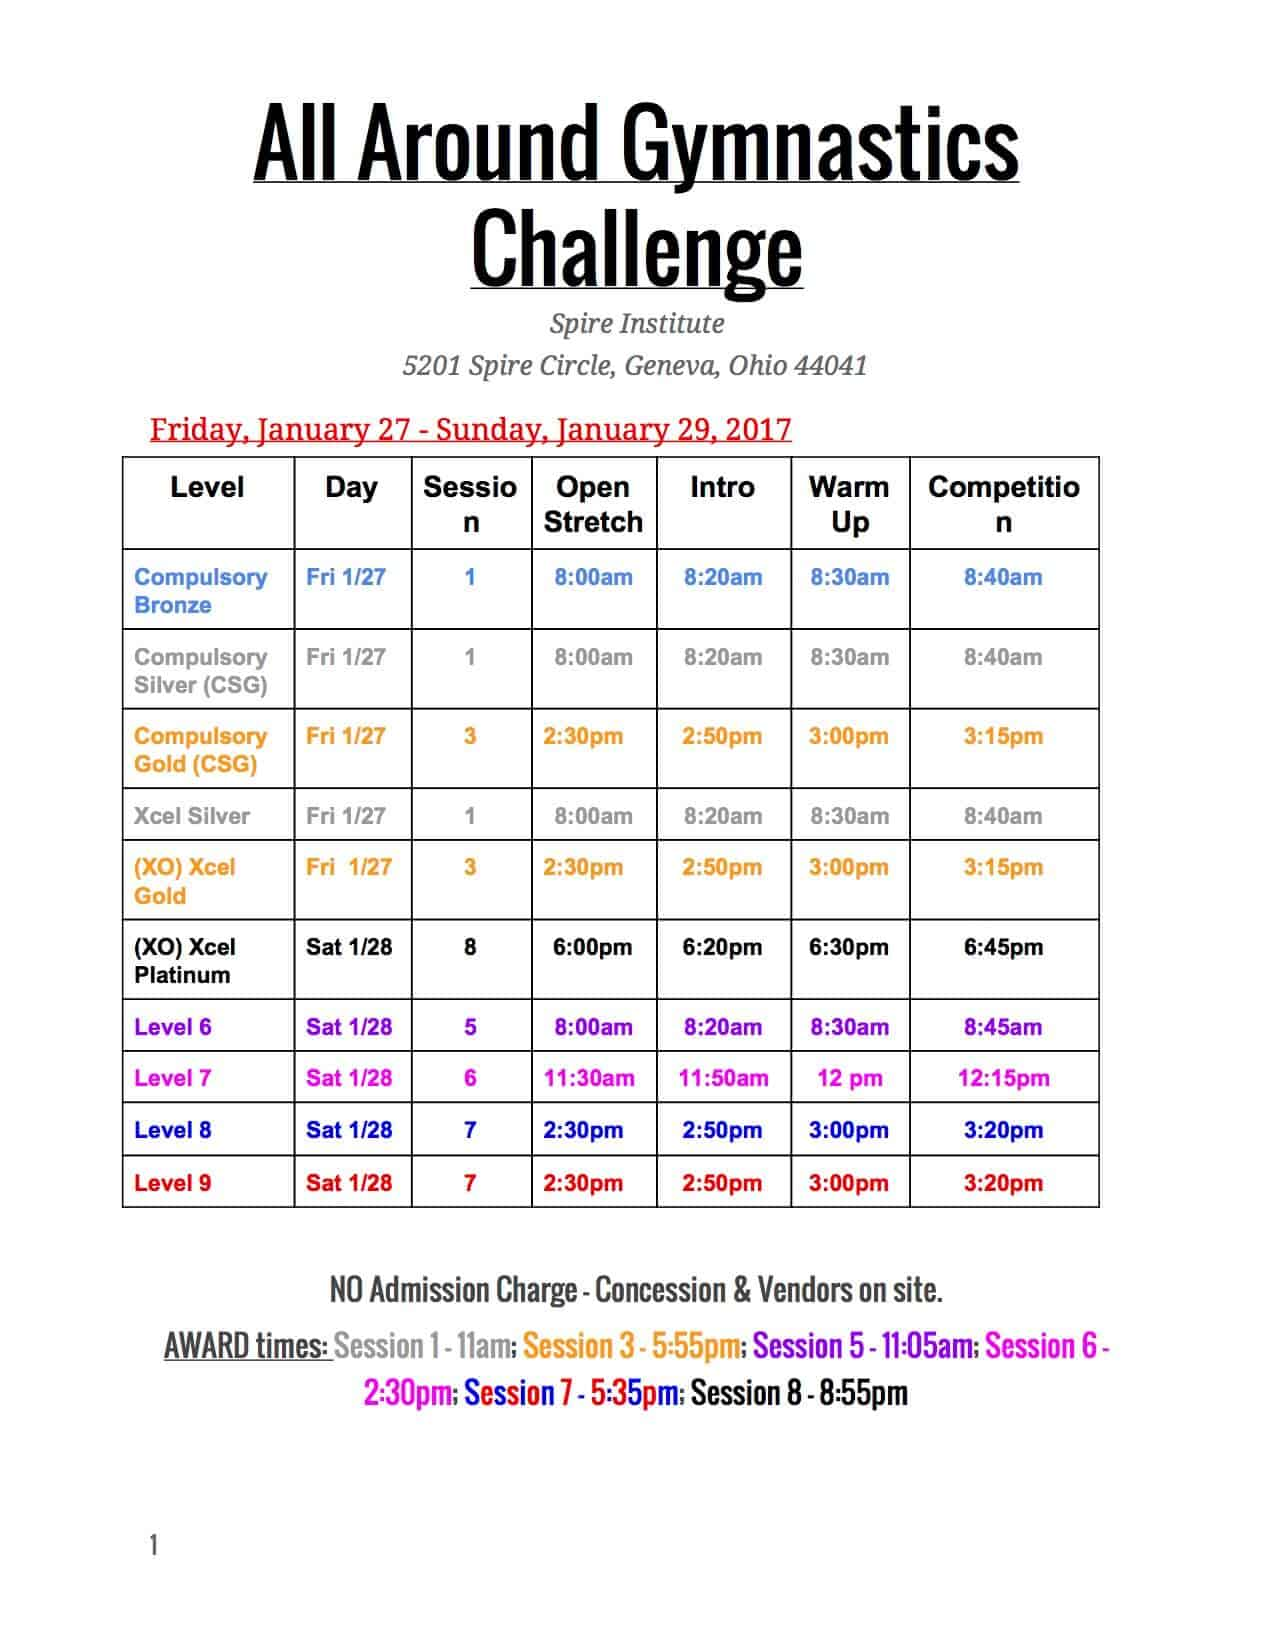 All Around Gymnastics Challenge Meet Schedule